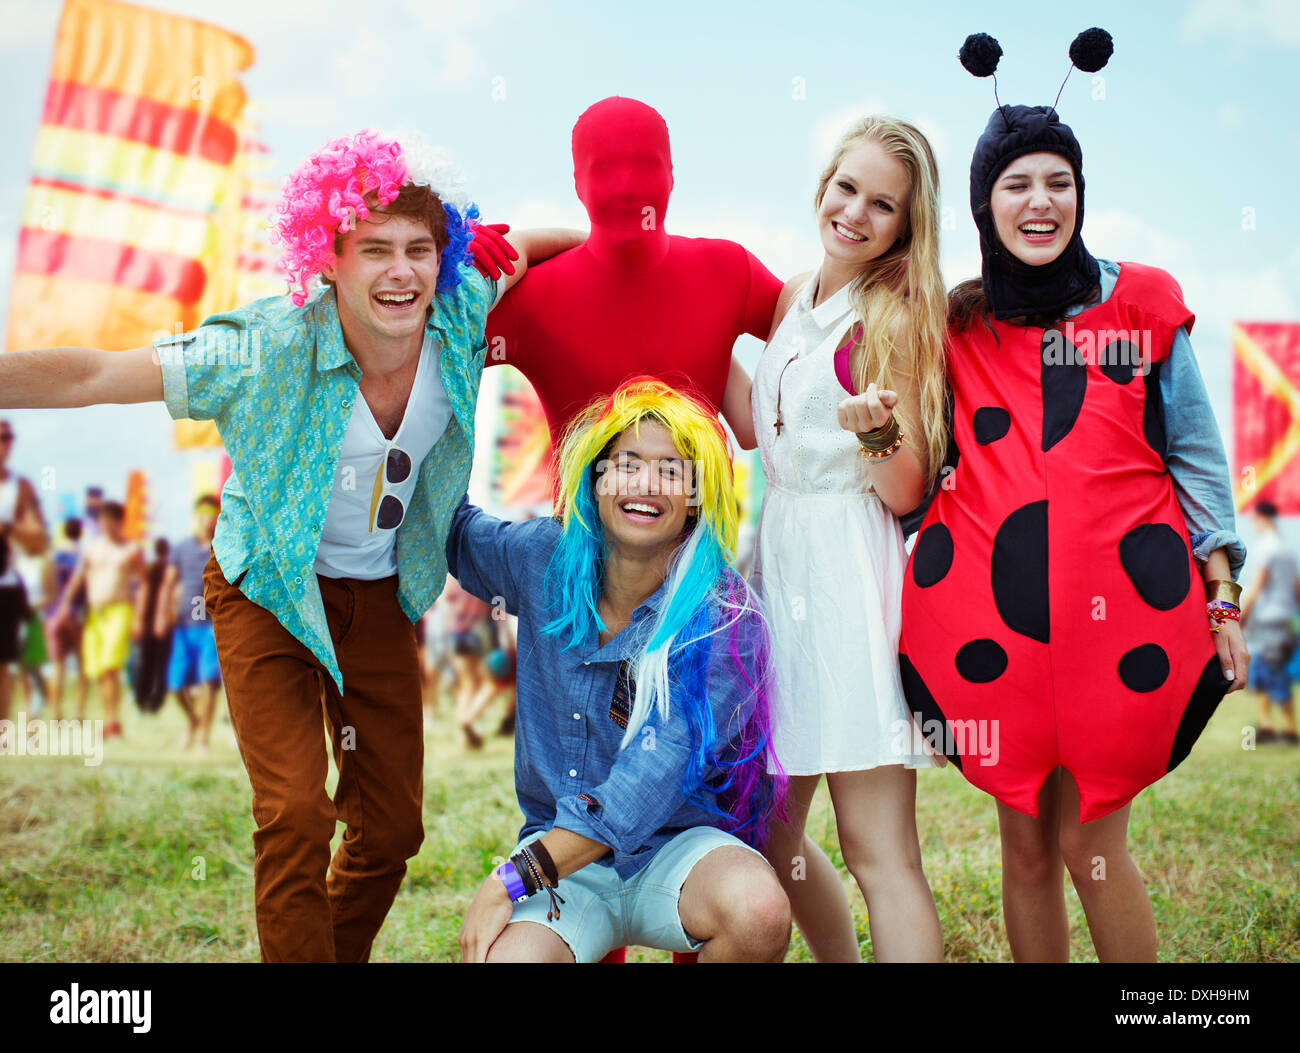 Portrait of friends in costumes at music festival - Stock Image